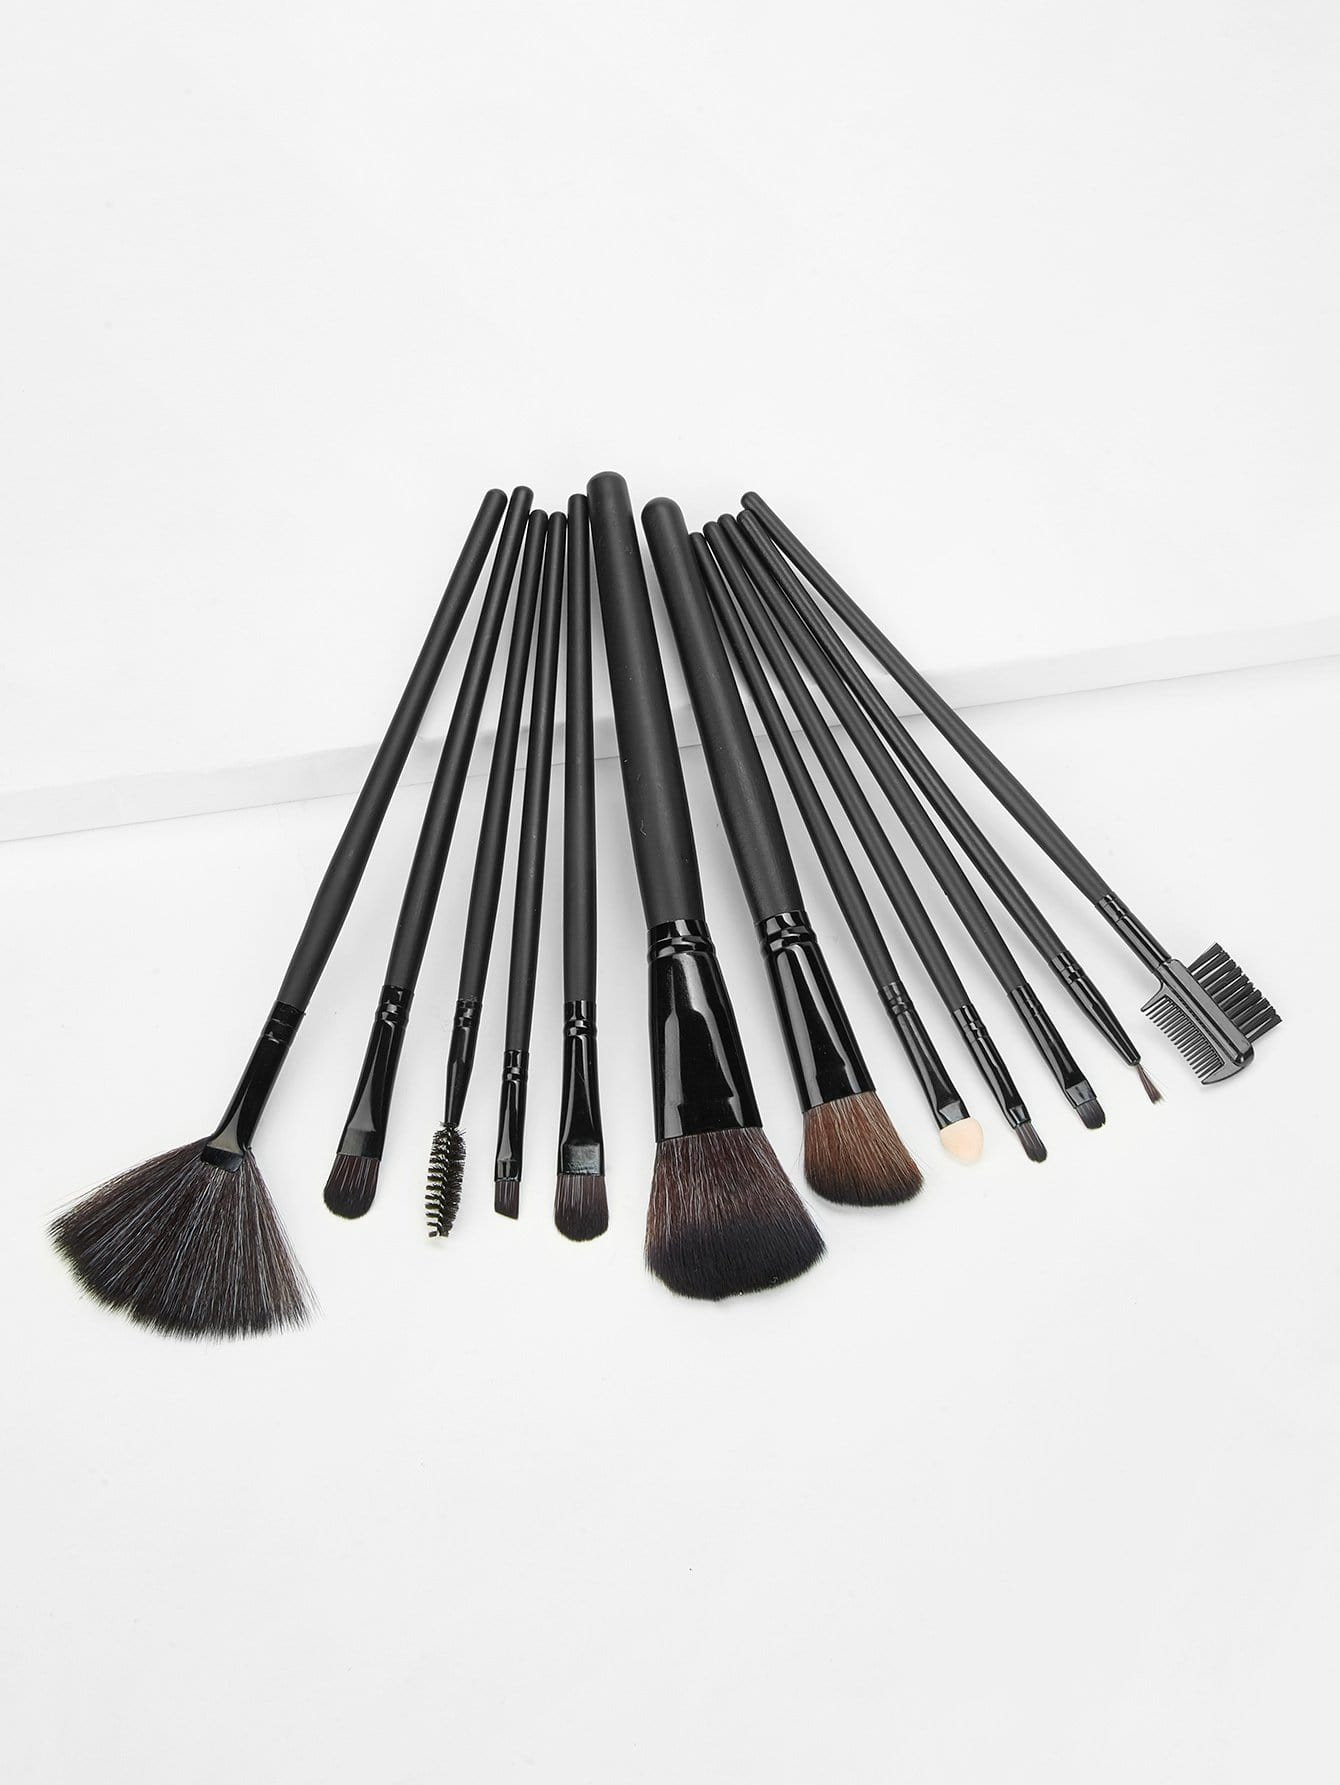 Professional Makeup Brush 12pcs With Bag